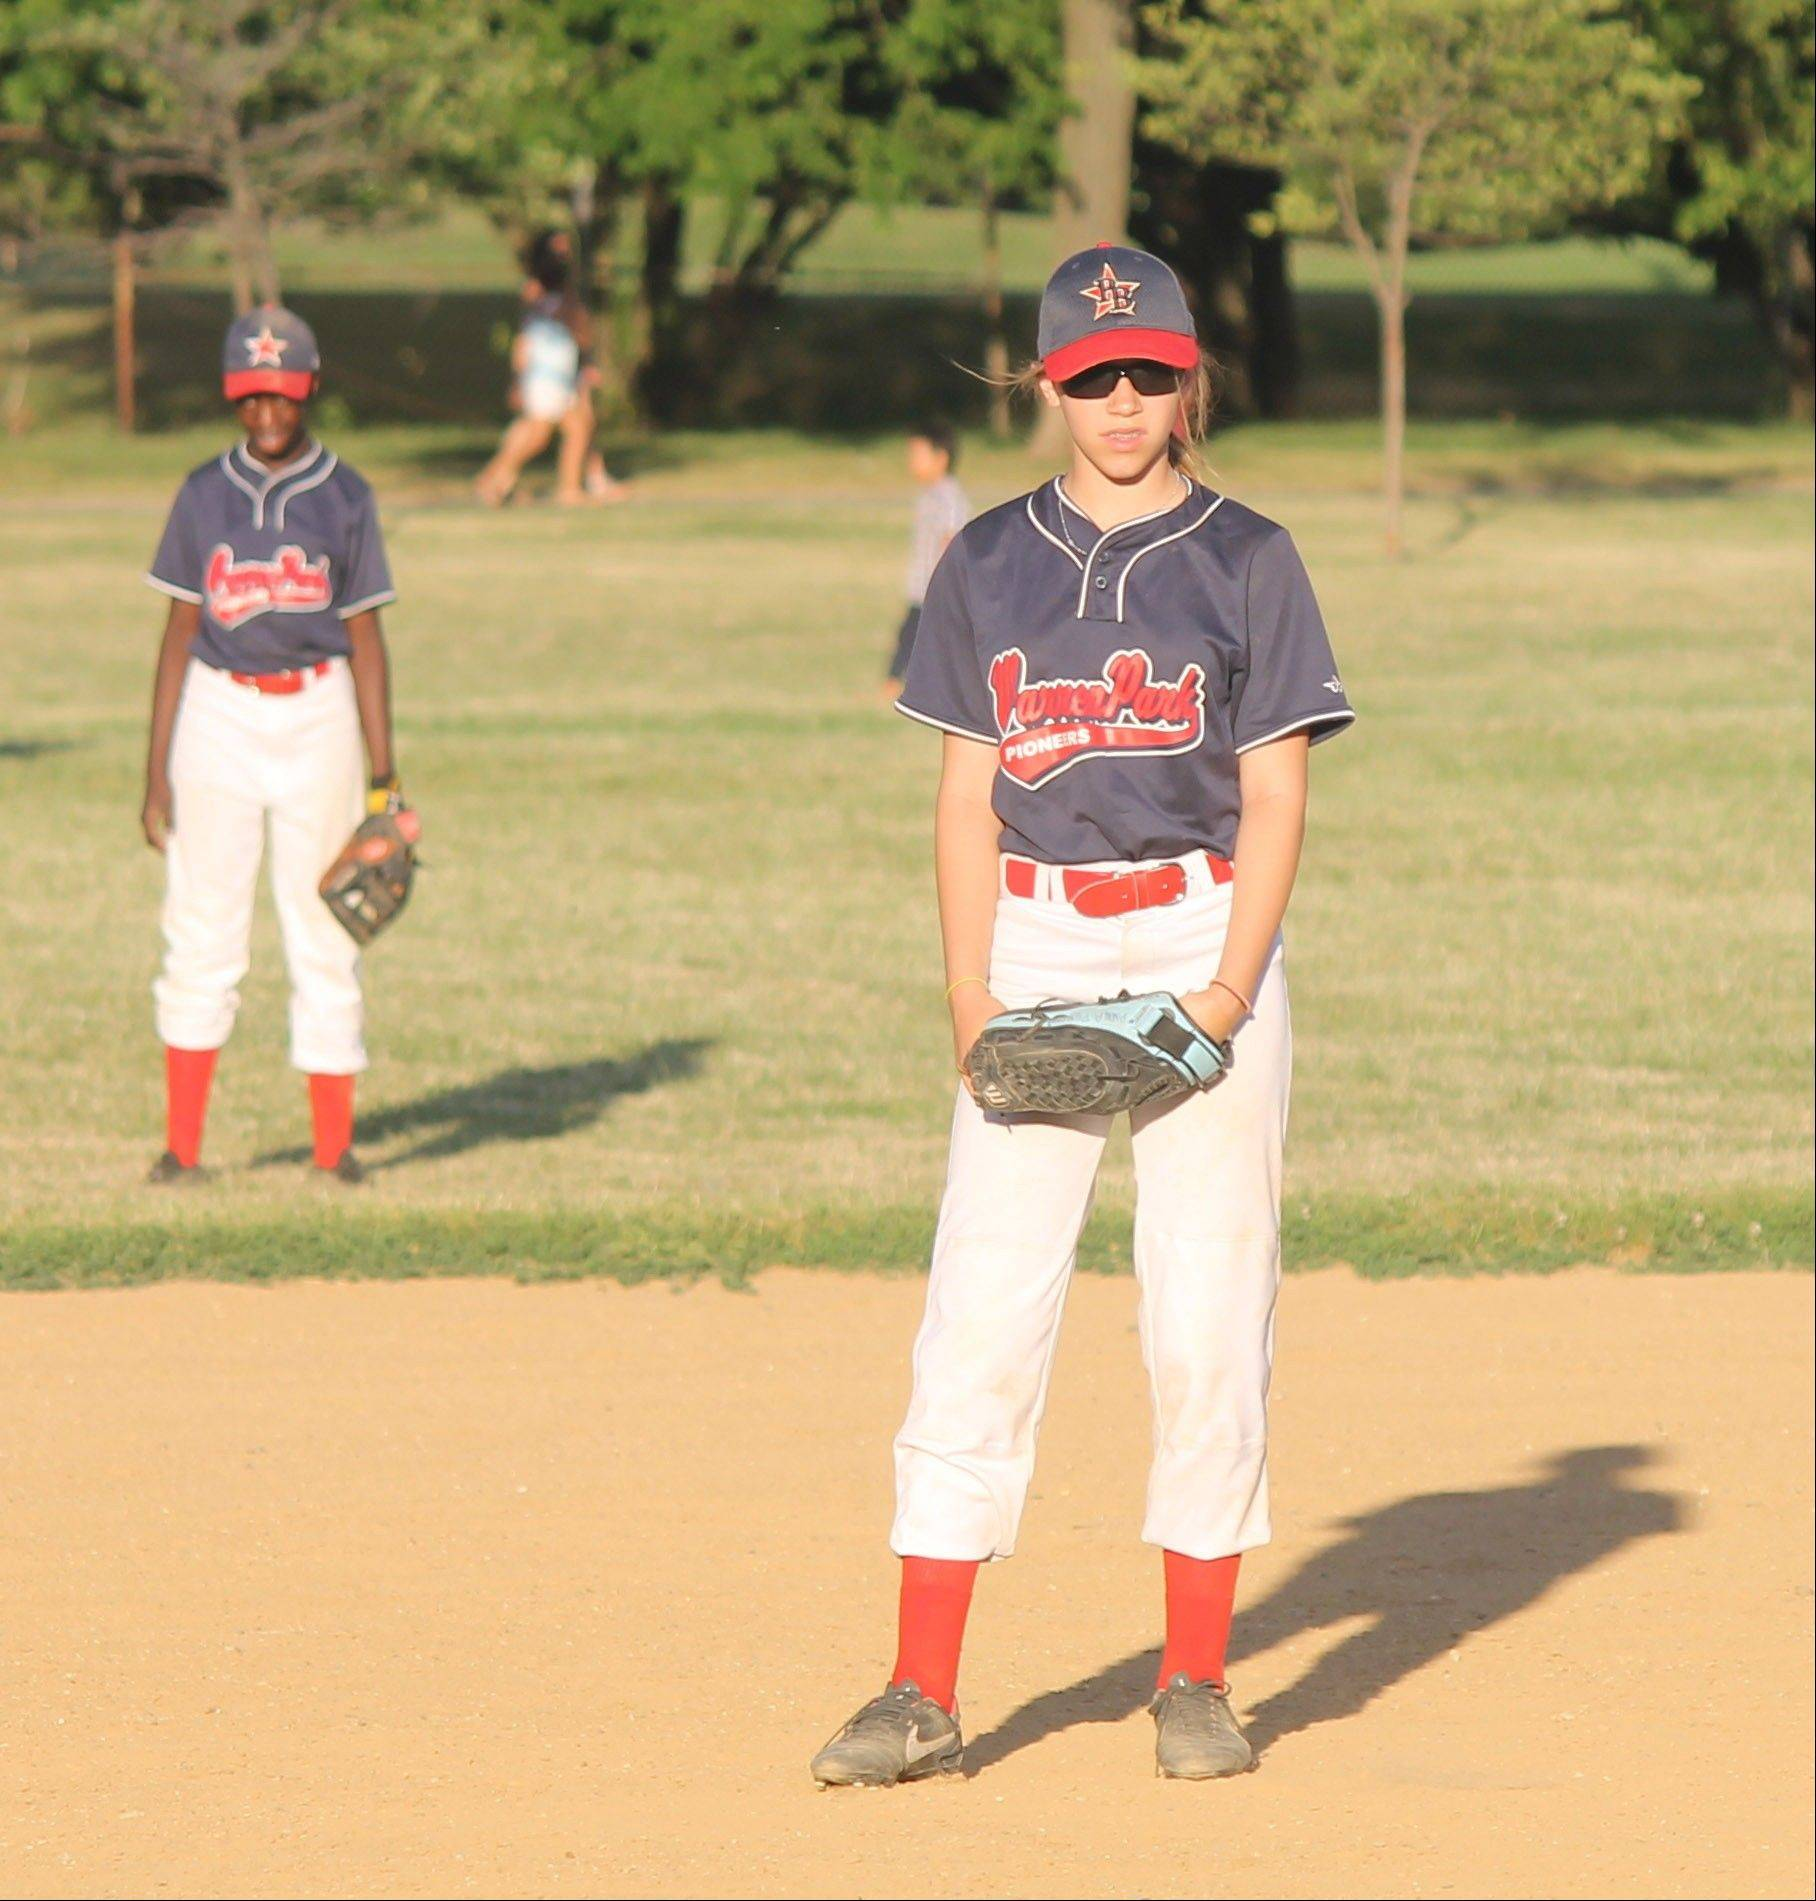 Infielder Anna Perona of the Warren Park Pioneers girls baseball team prefers baseball over softball. This summer she'll get a chance to play in a national tournament at Cooperstown, N.Y., with a Chicago travel team.